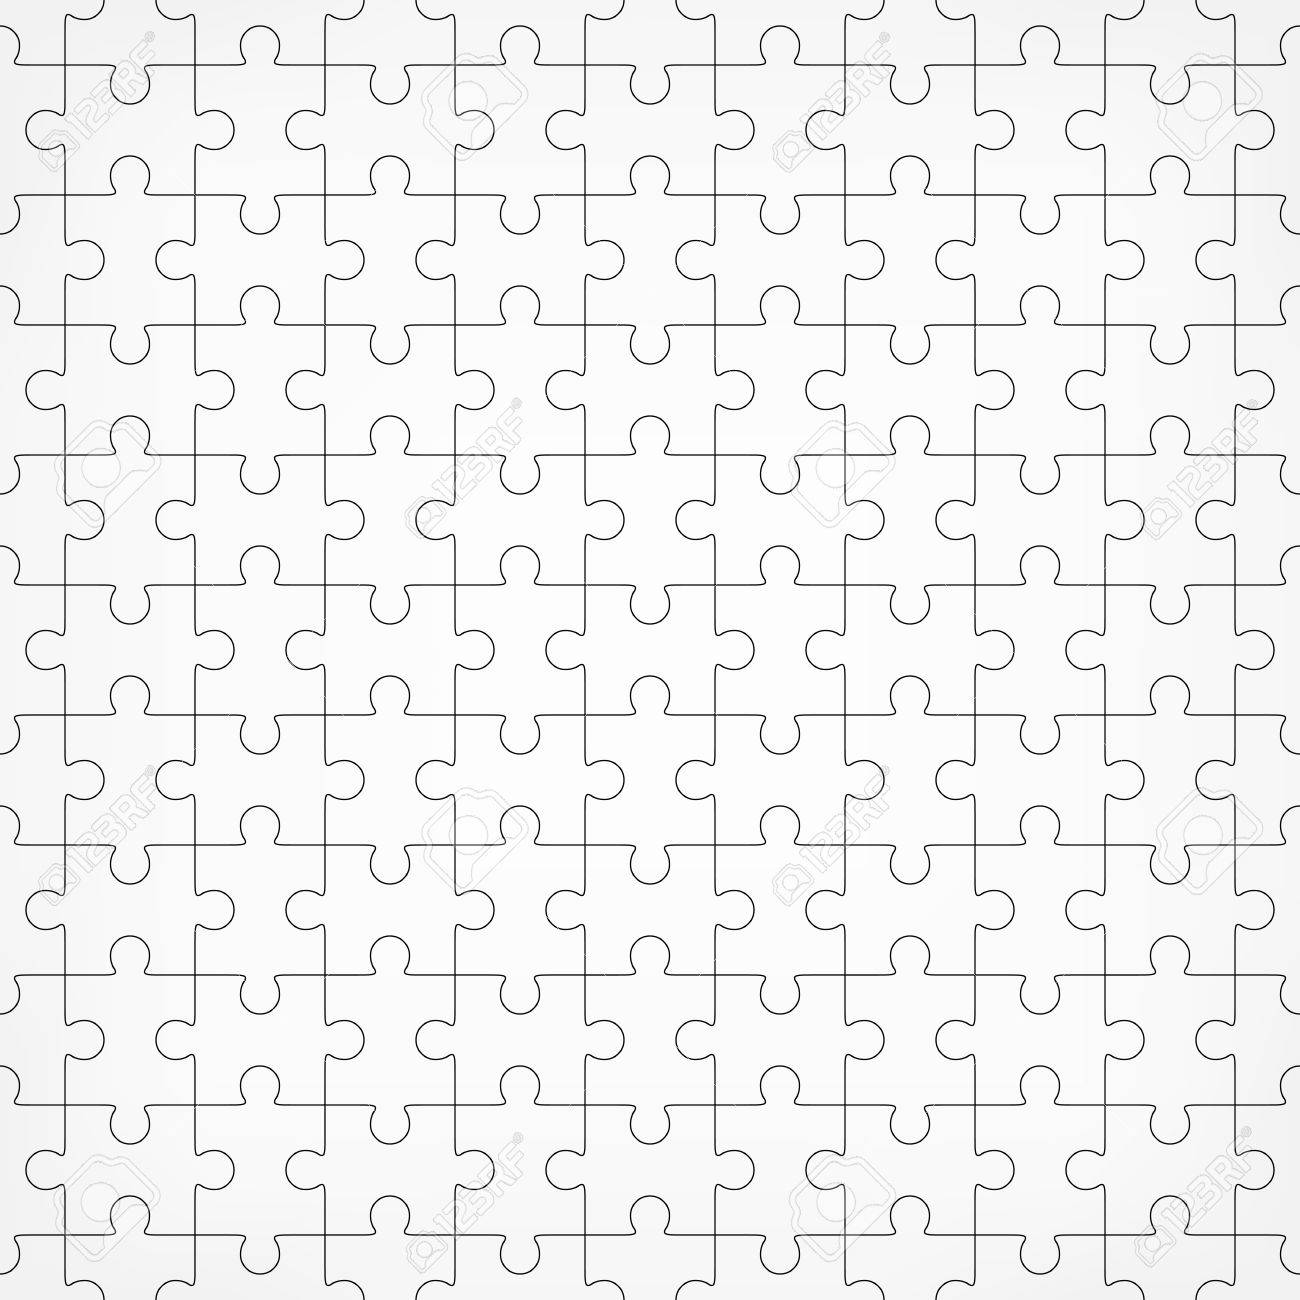 Jigsaw Puzzle Blank Template Pieces Are Easy To Separate Every